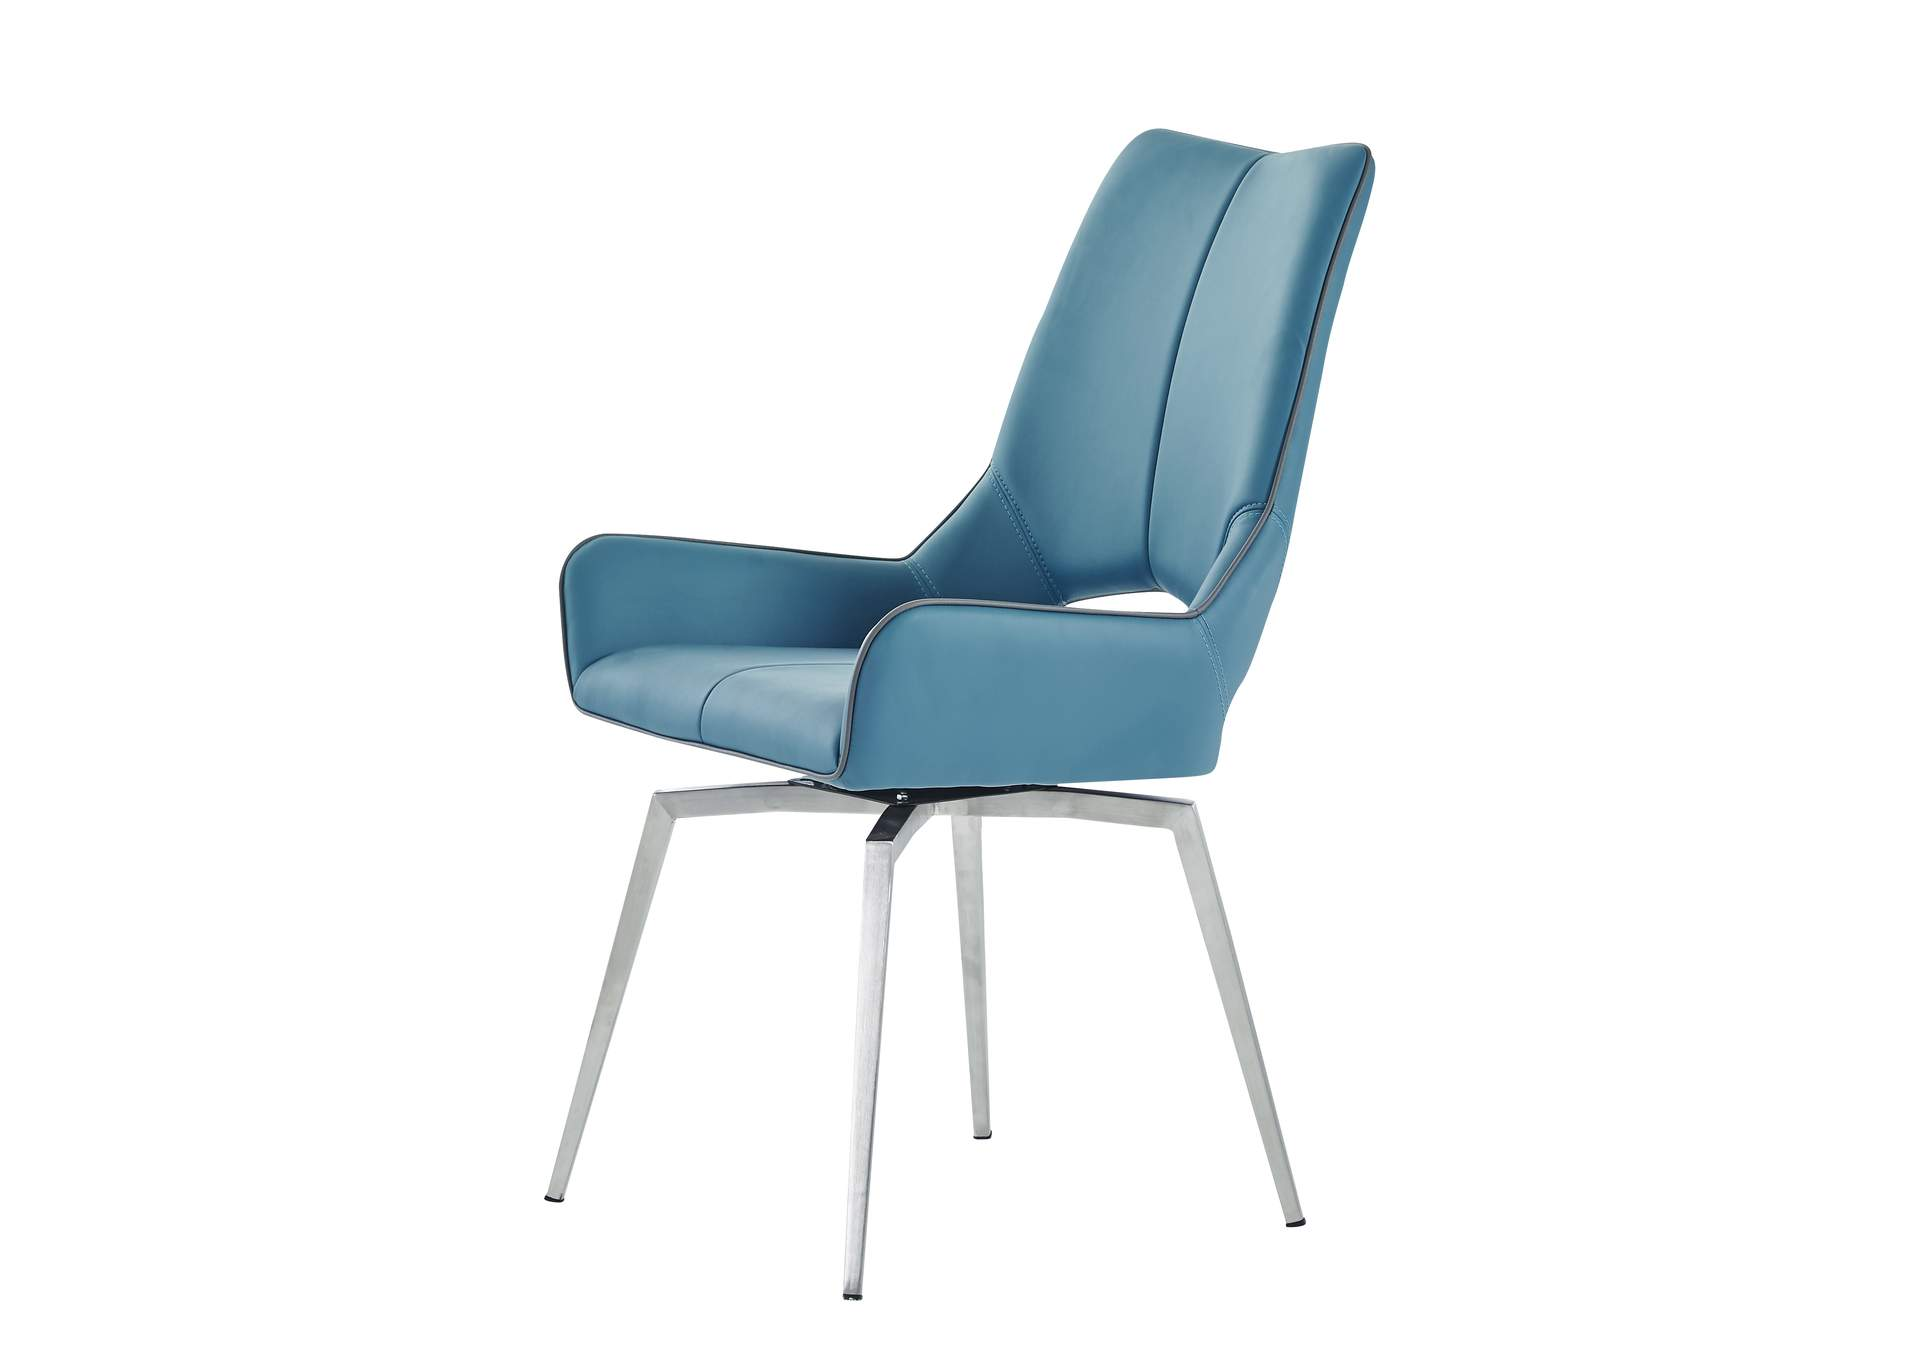 Turquoise Dining Chair,Global Furniture USA